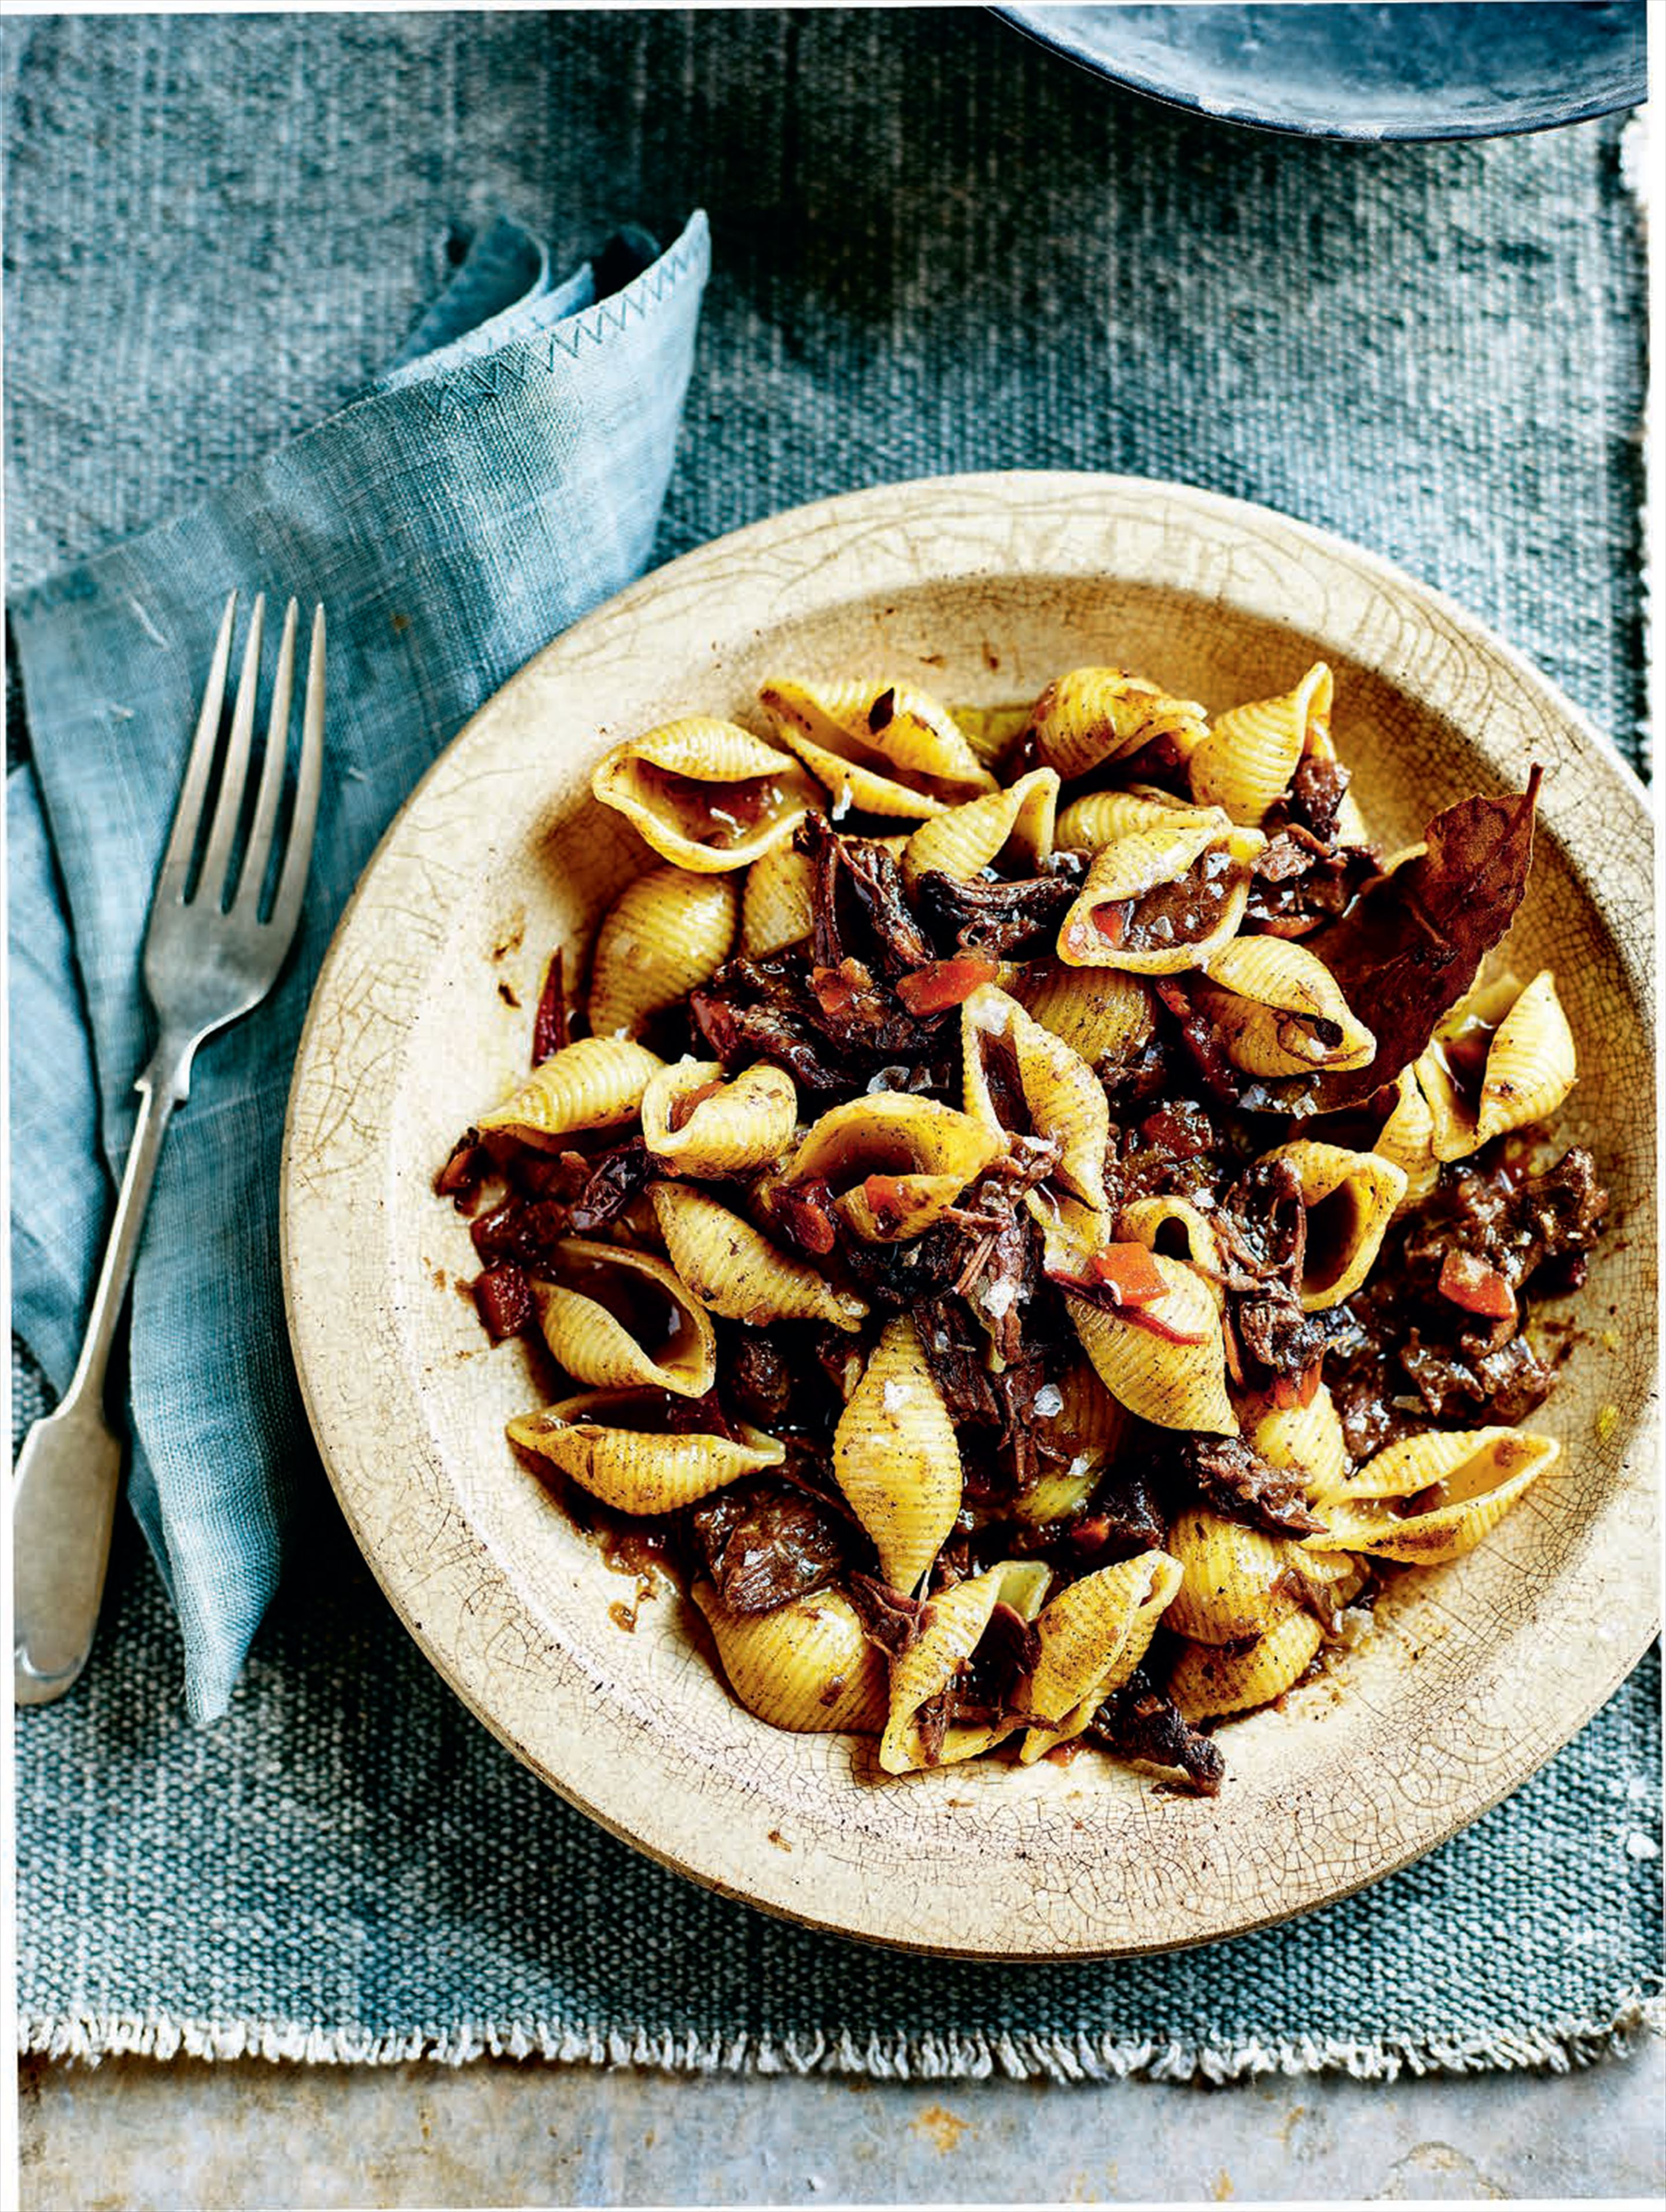 Stewed pig cheeks with pasta